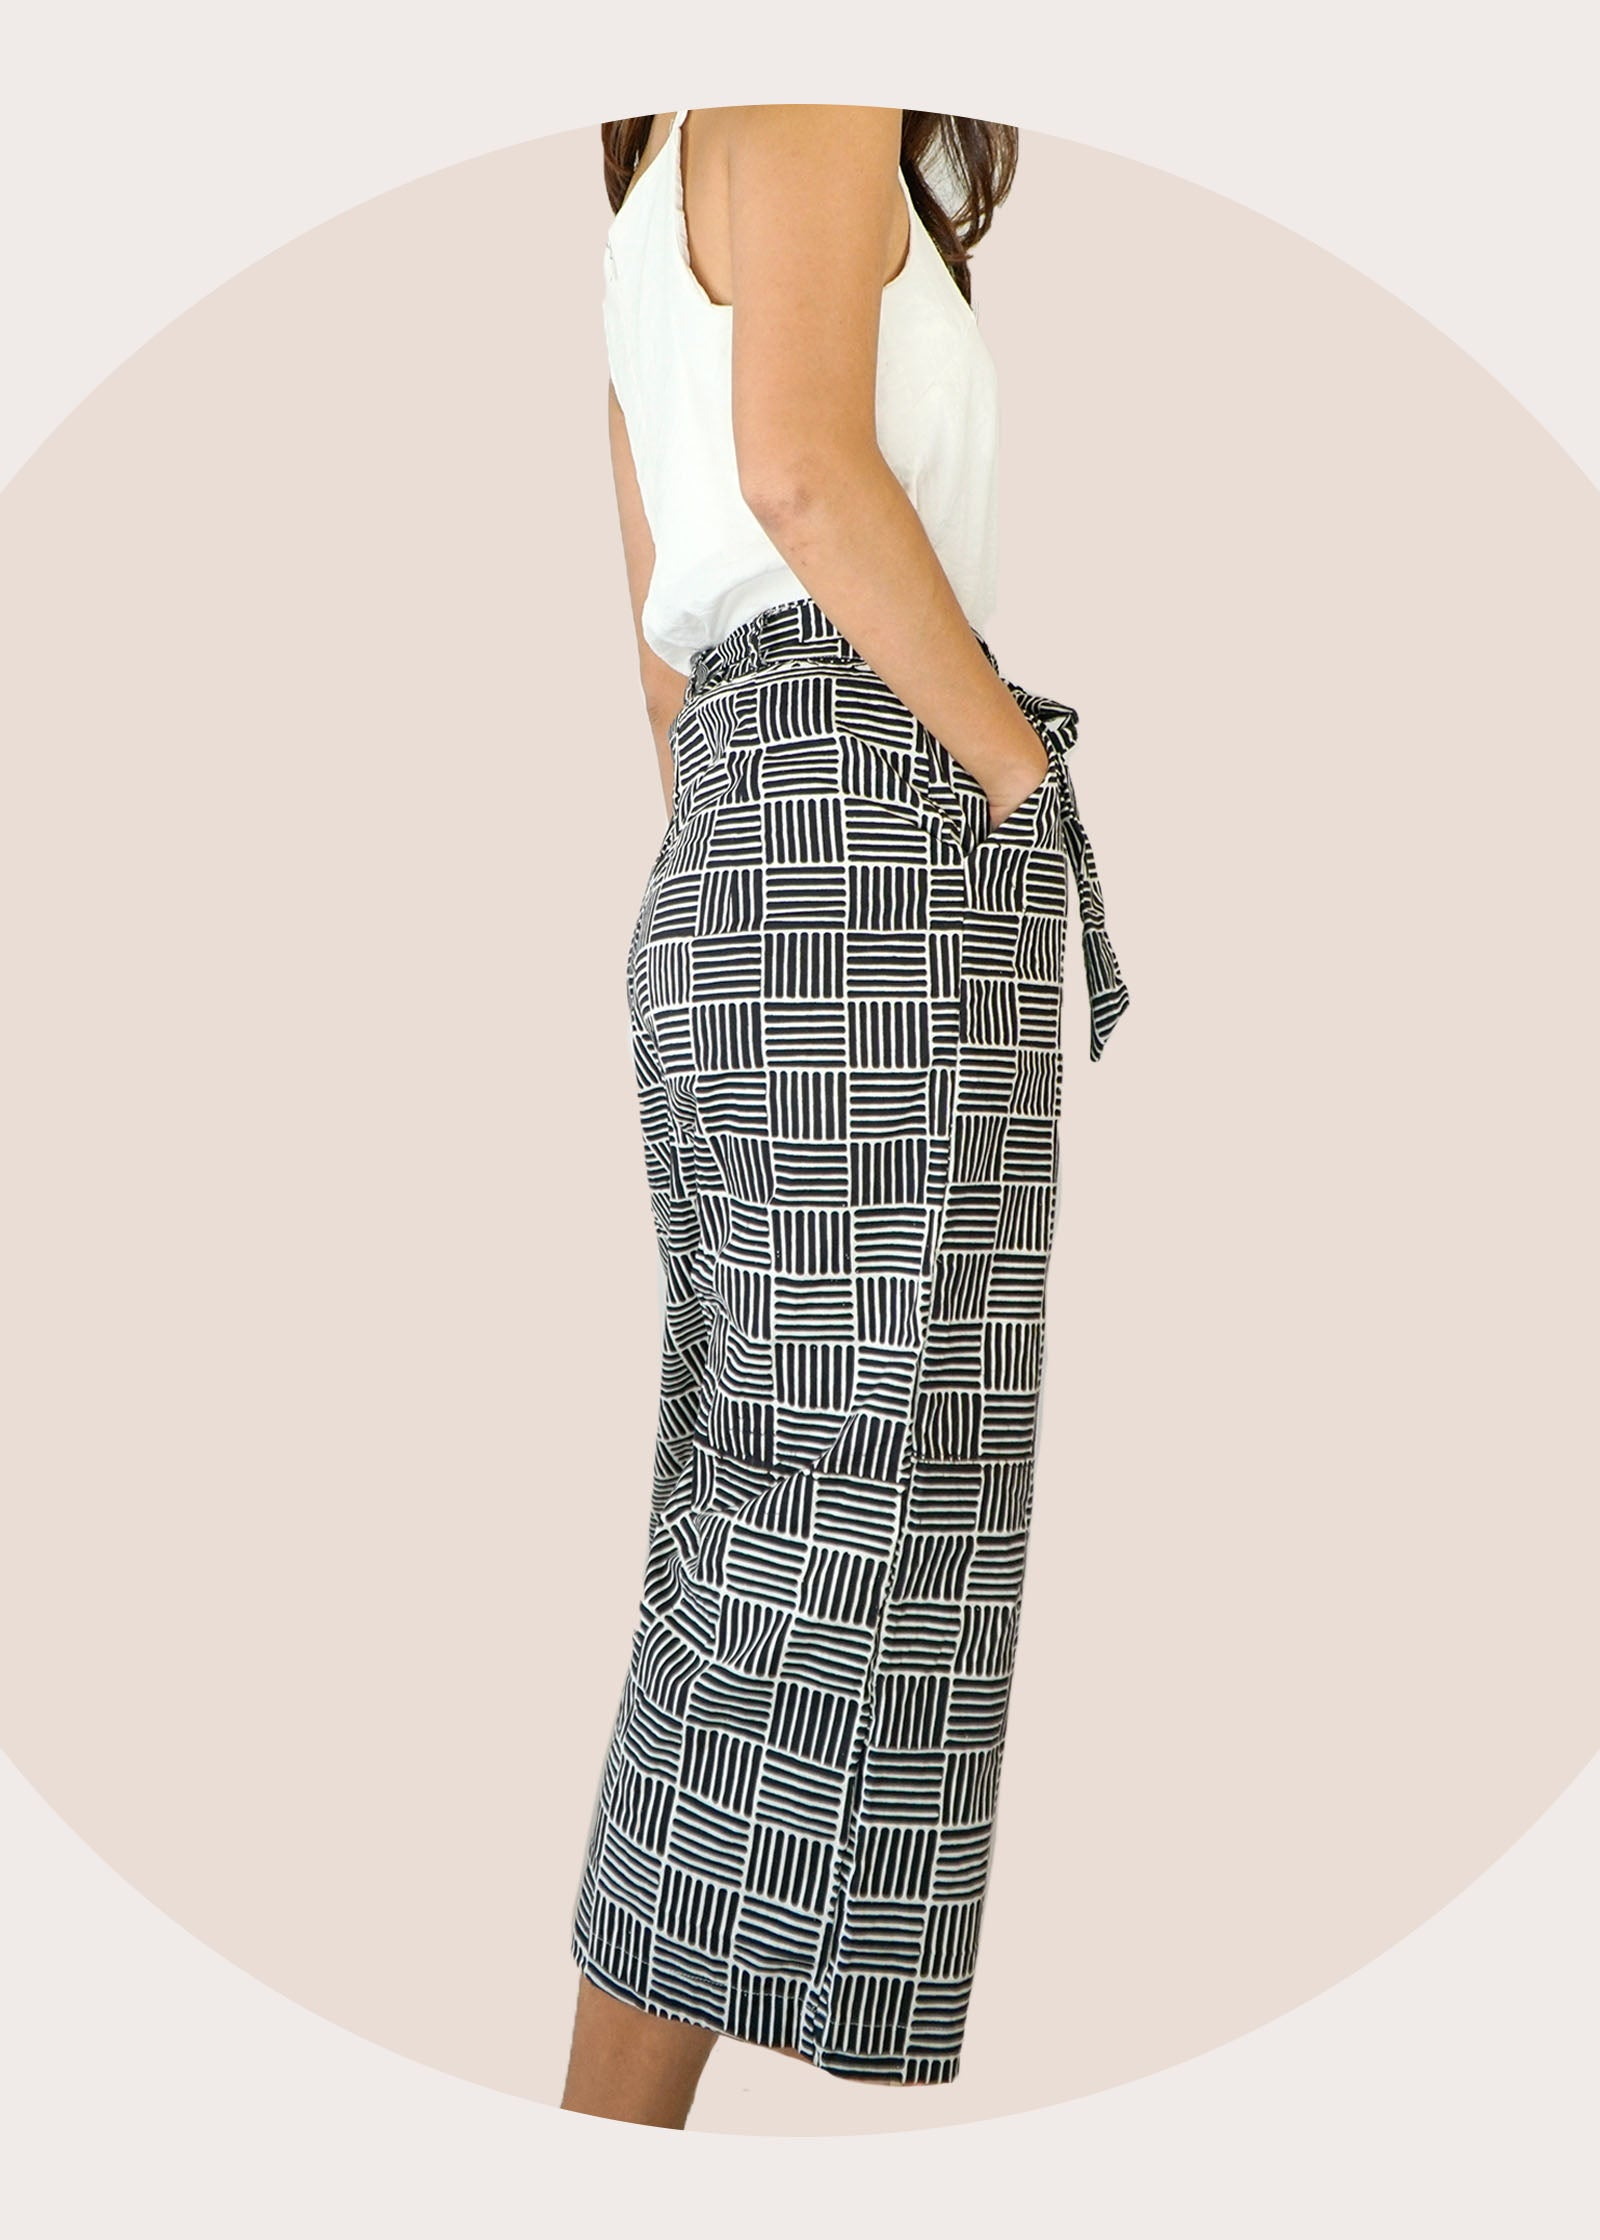 Imara Flare Pants in Black Grid